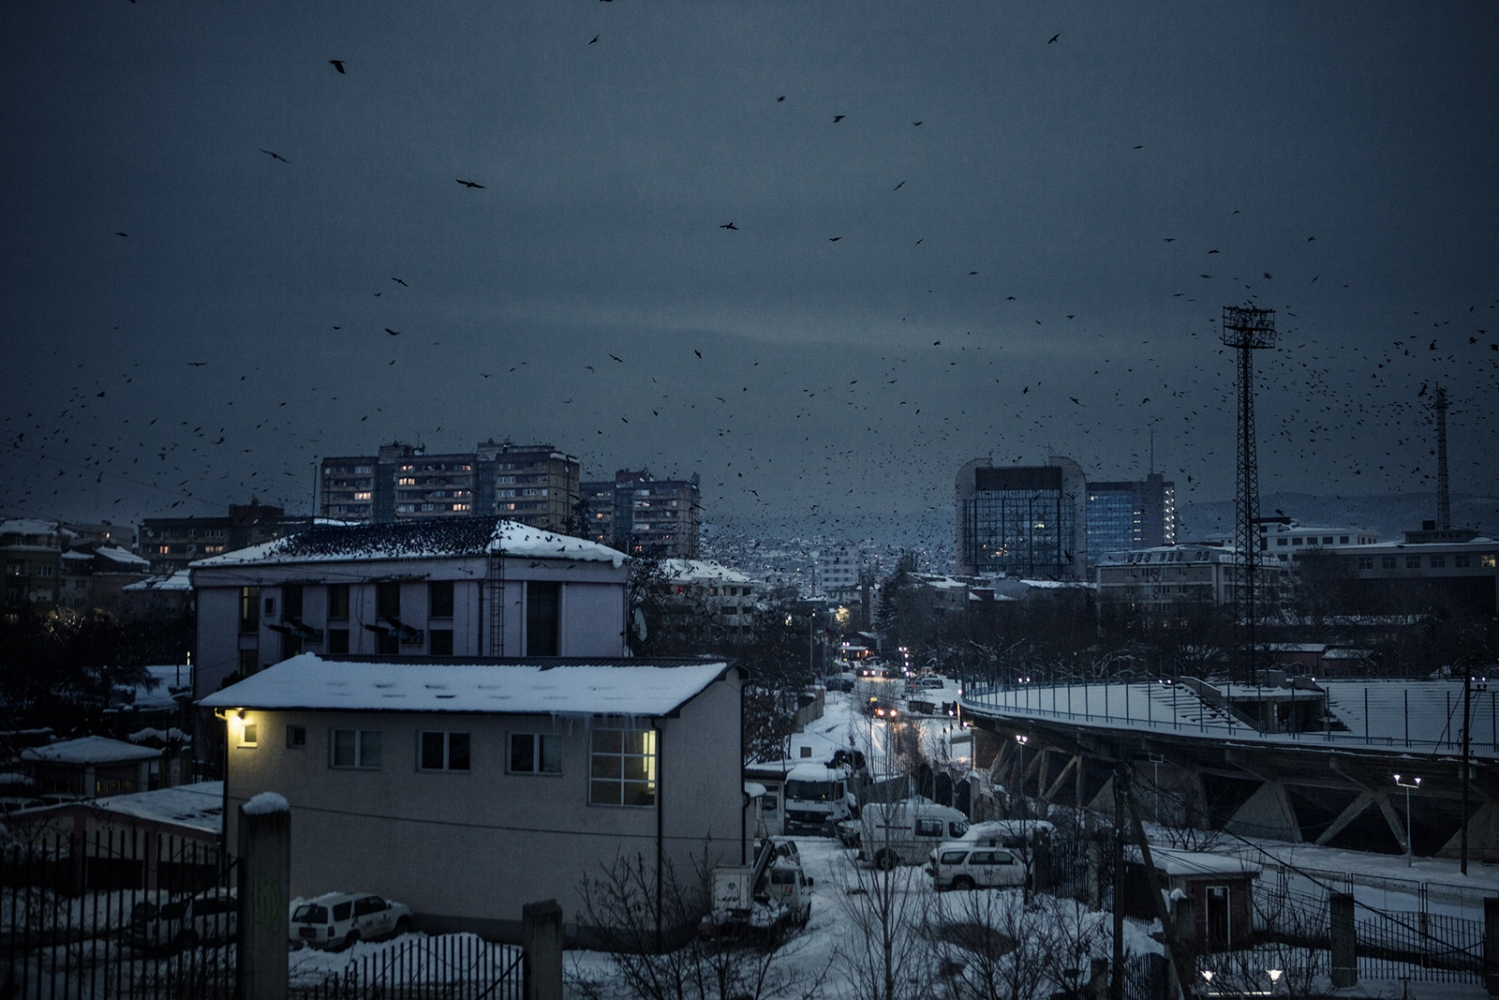 Kosova, Pristina, 2012: Pristina is the capital and the largest city of Kosova and it is the seat of government and of major universities. The crows, which were said to have left the city during the war, now are back and their cawing continues to be the soundtrack of the Kosova capital city.